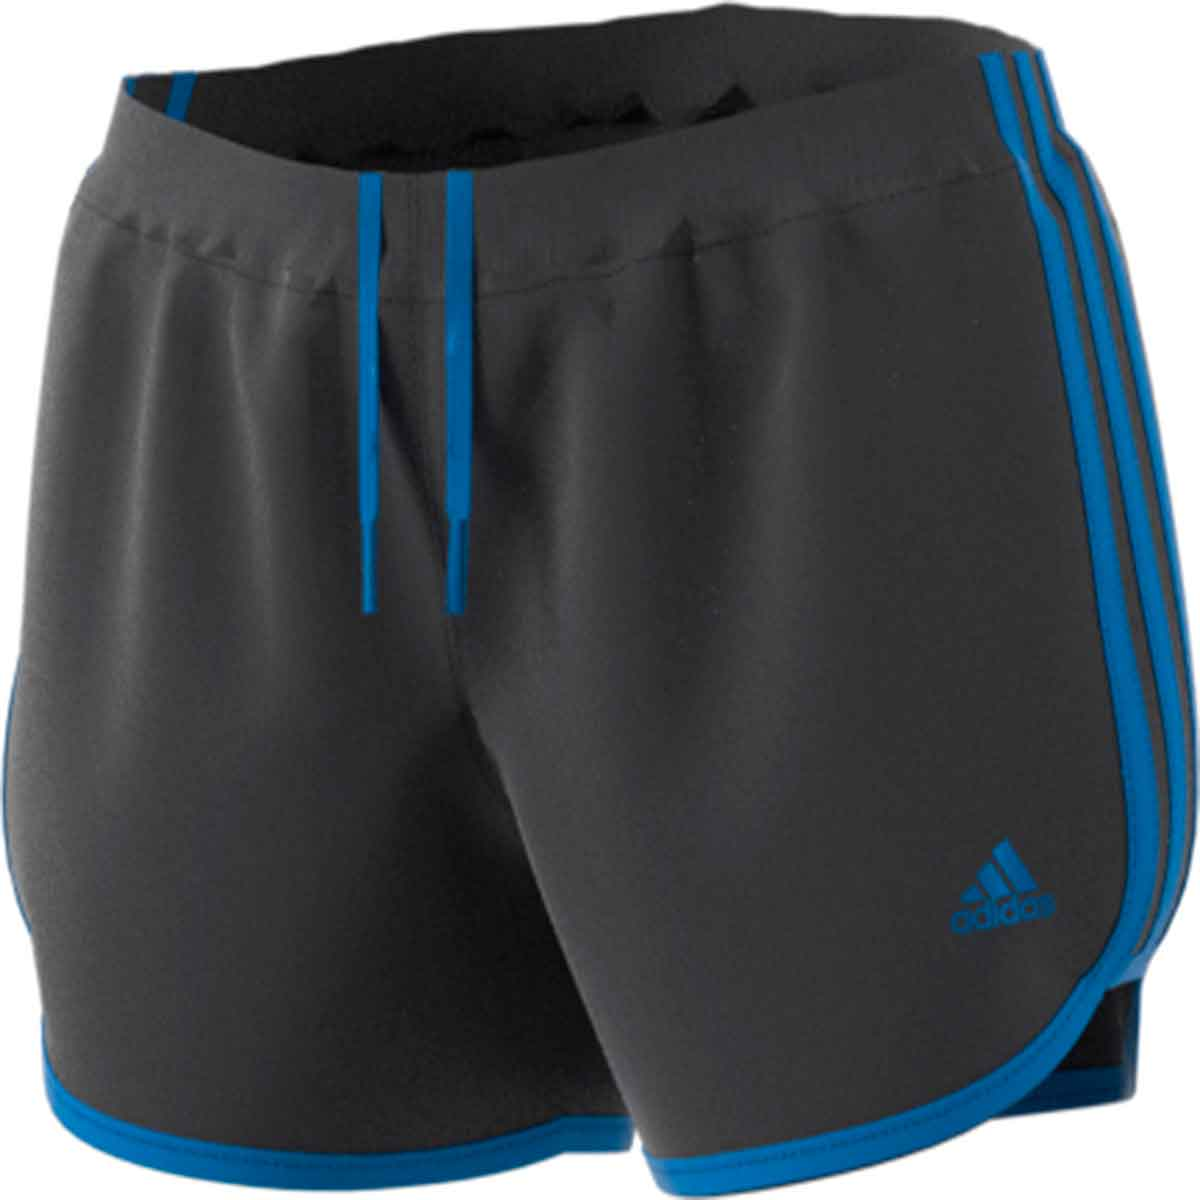 6b4bc6f76 Details about Adidas Women's M10 Icon 3